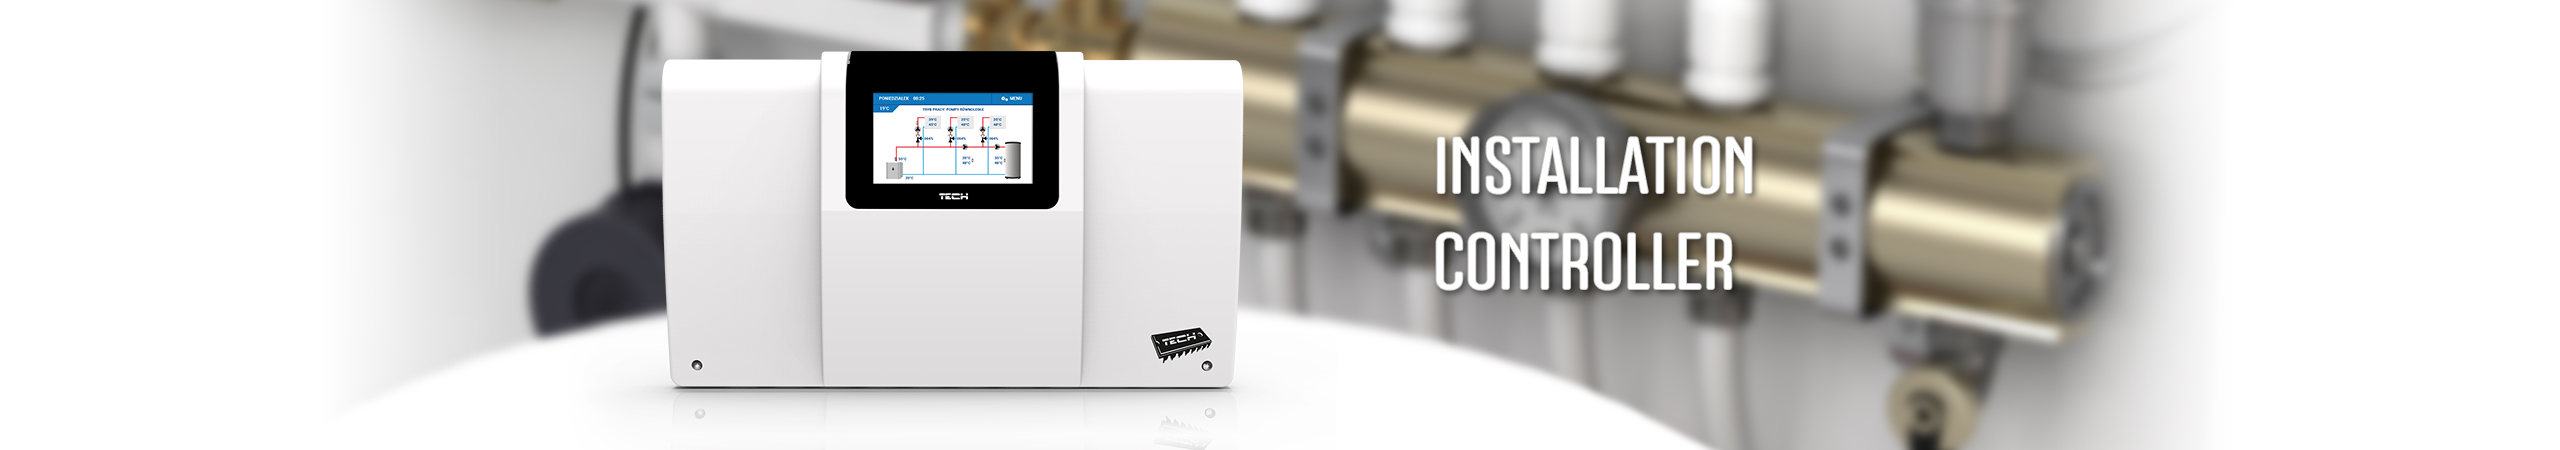 Controllers for heating instalations - TECH Controllers - TECH Sterowniki